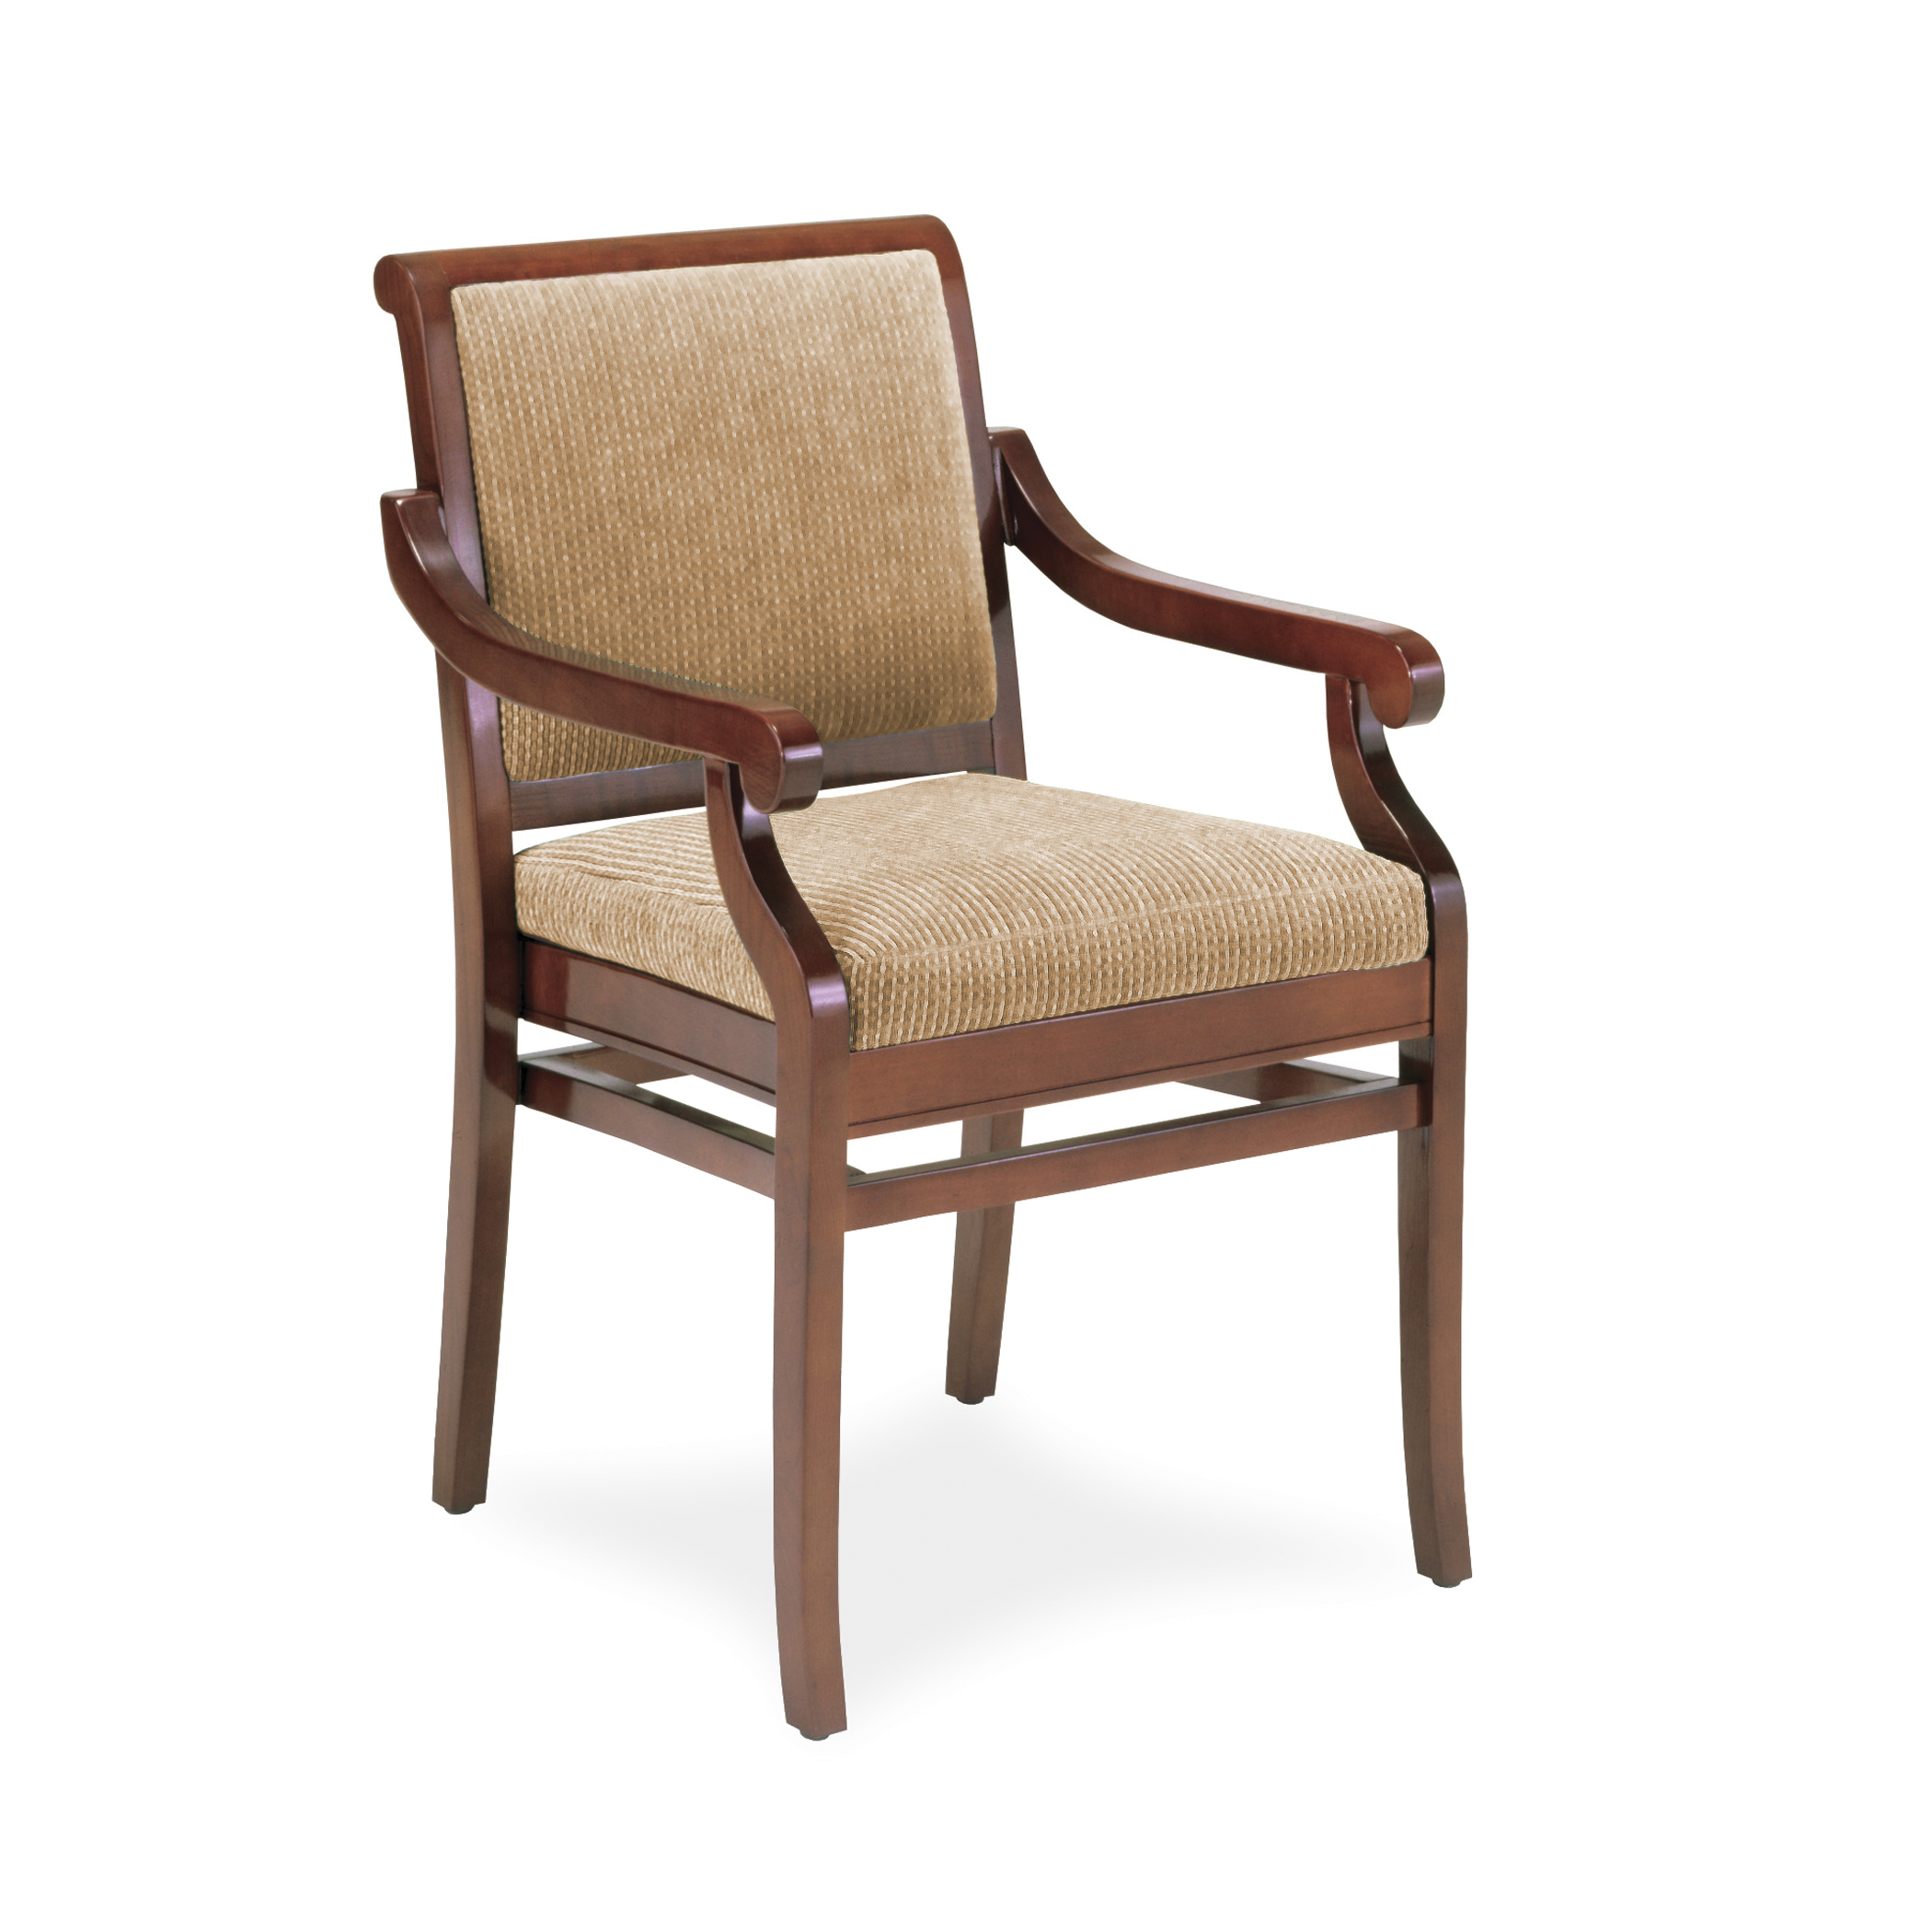 STACK 4012 Stacking Wood Arm Chair. SHARE. LOW-RES HI-RES FAVORITES PRINT  sc 1 st  Shelby Williams & 4012 Stacking Wood Arm Chair